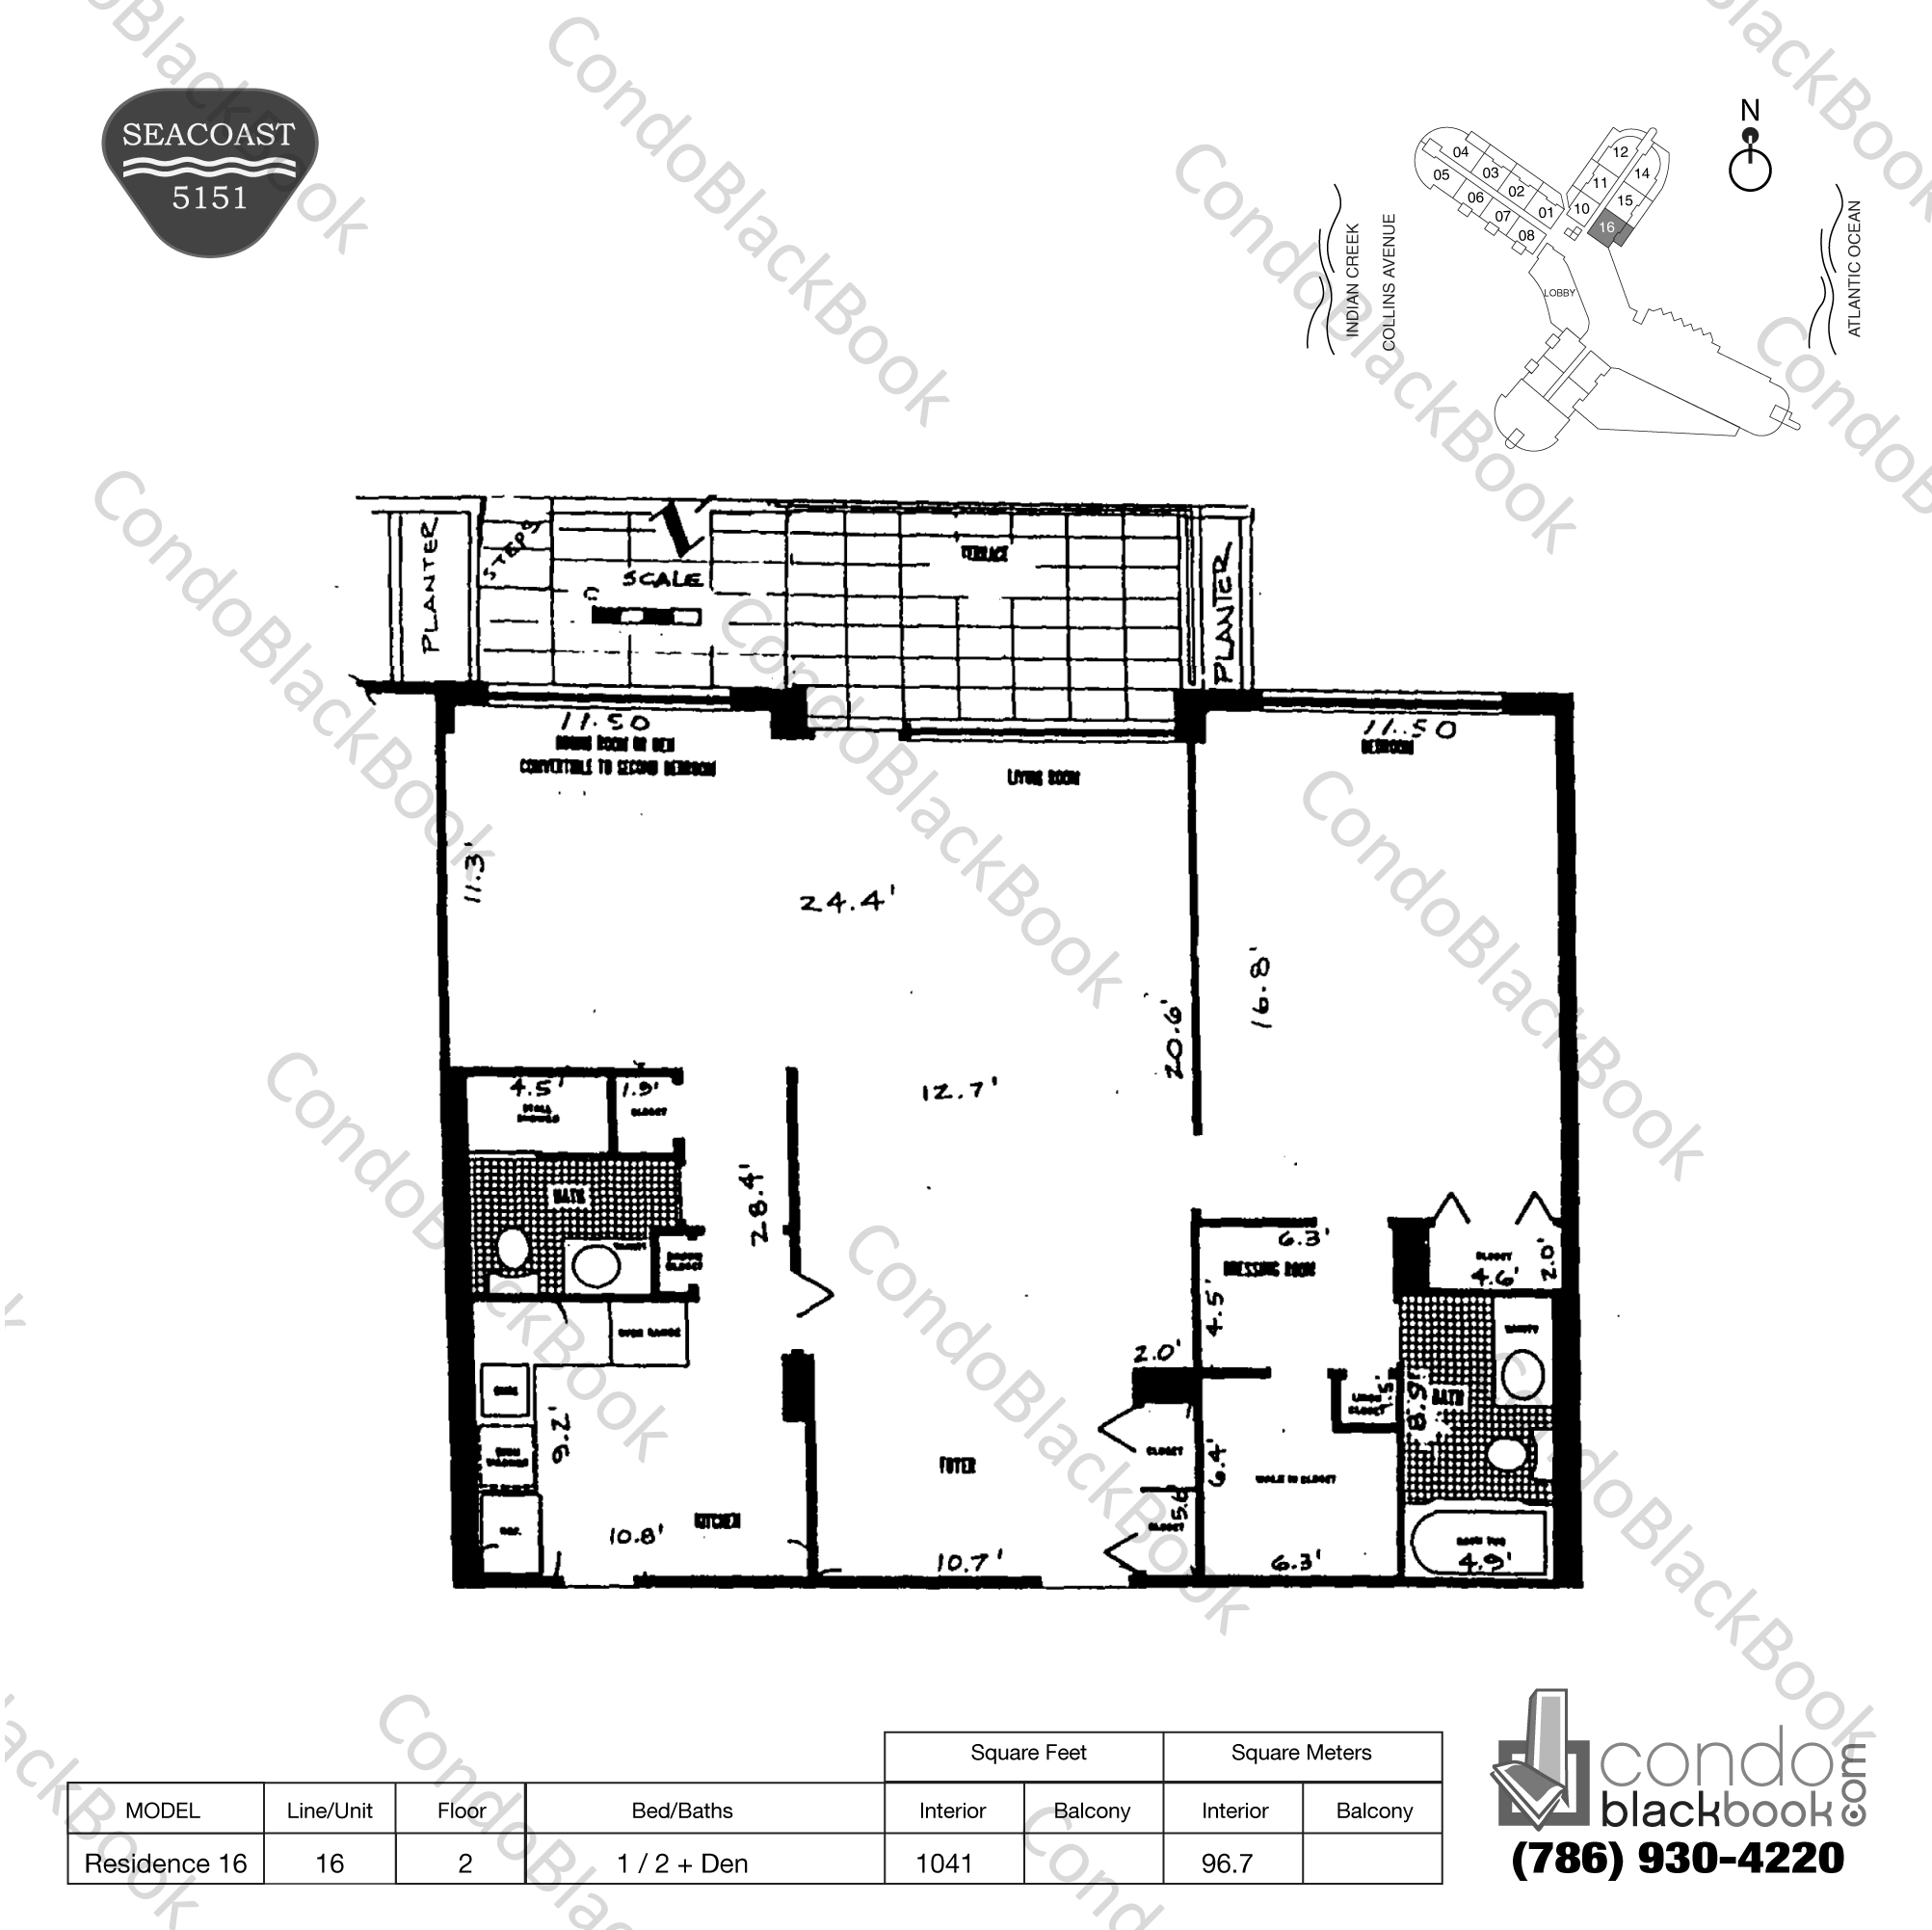 Floor plan for Seacoast 5151 Mid-Beach Miami Beach, model Residence 16, line 16, 1 / 2 + Den bedrooms, 1041 sq ft